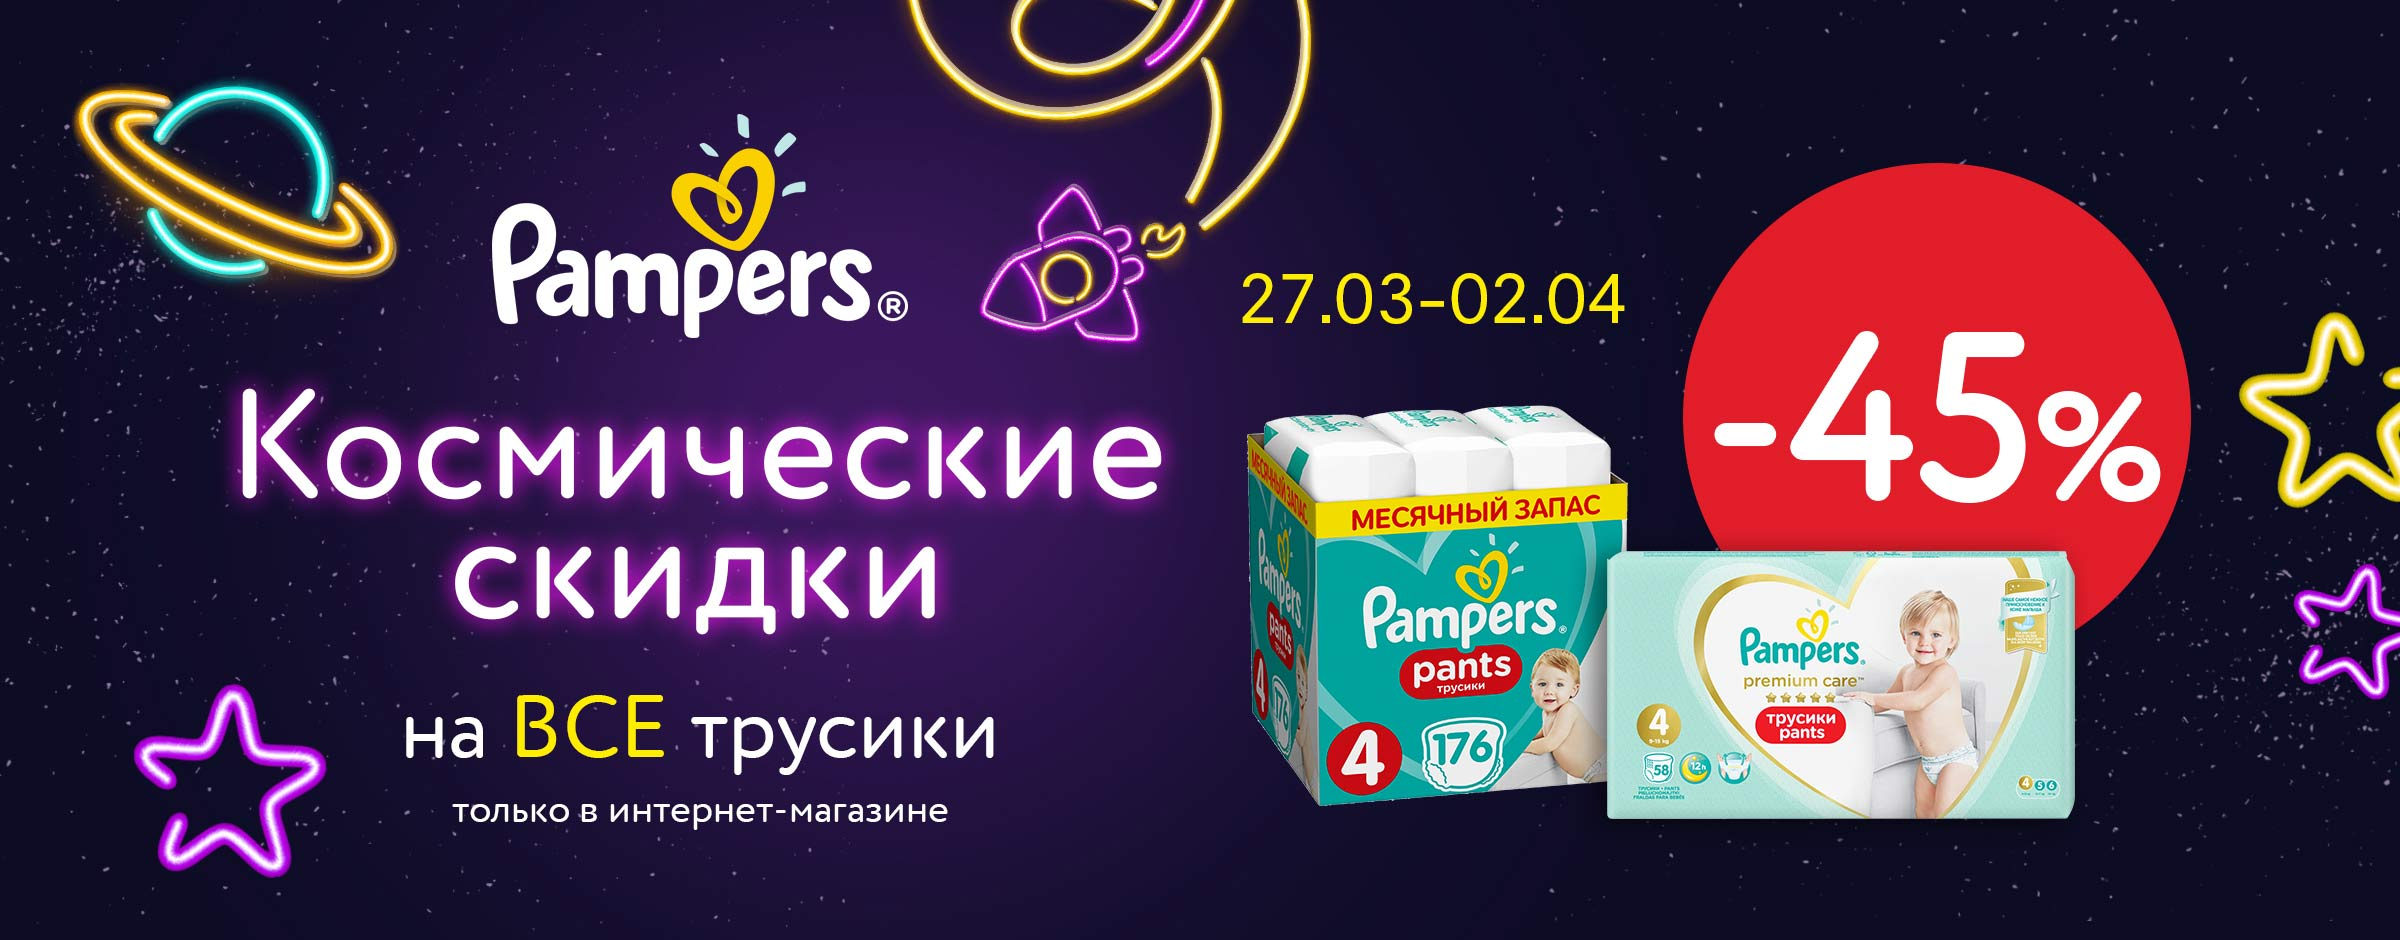 Pampers КС Главная